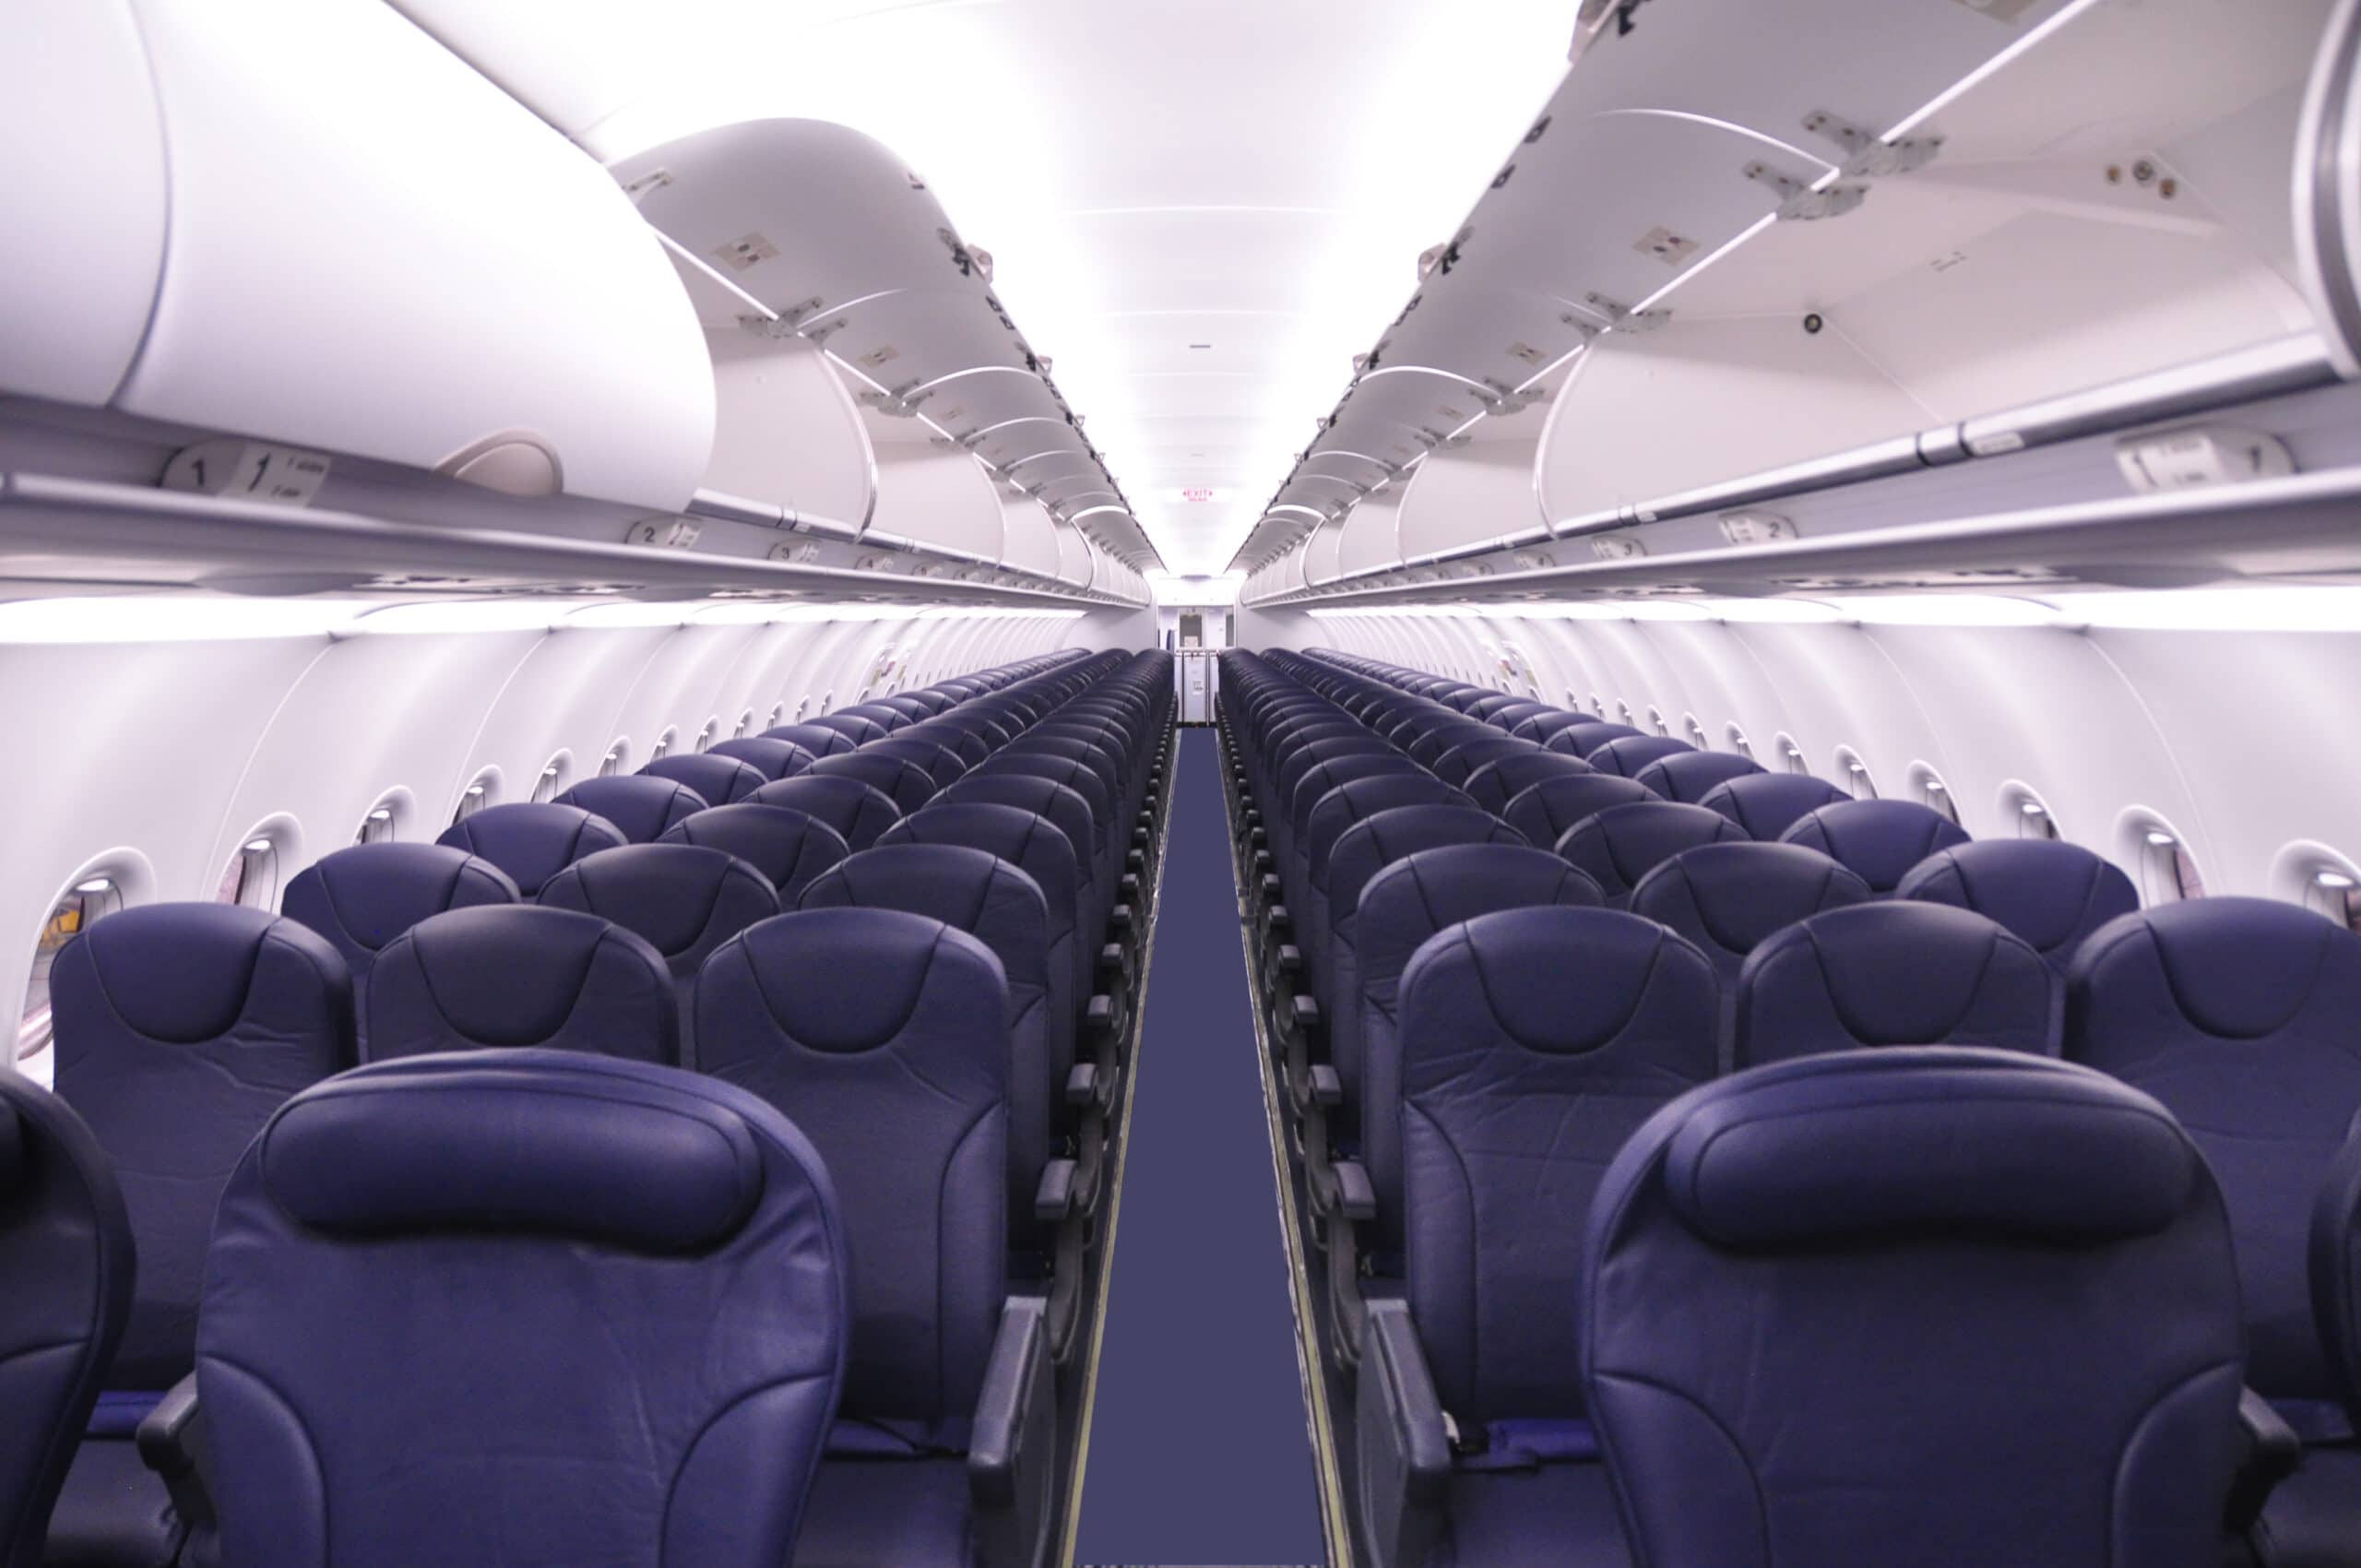 Fly more and pay less with Spirit Airlines bare fare. This inside look at Spirit Airlines A320 Aircraft interier shows what you can expect when you choose Spirit Airlines.